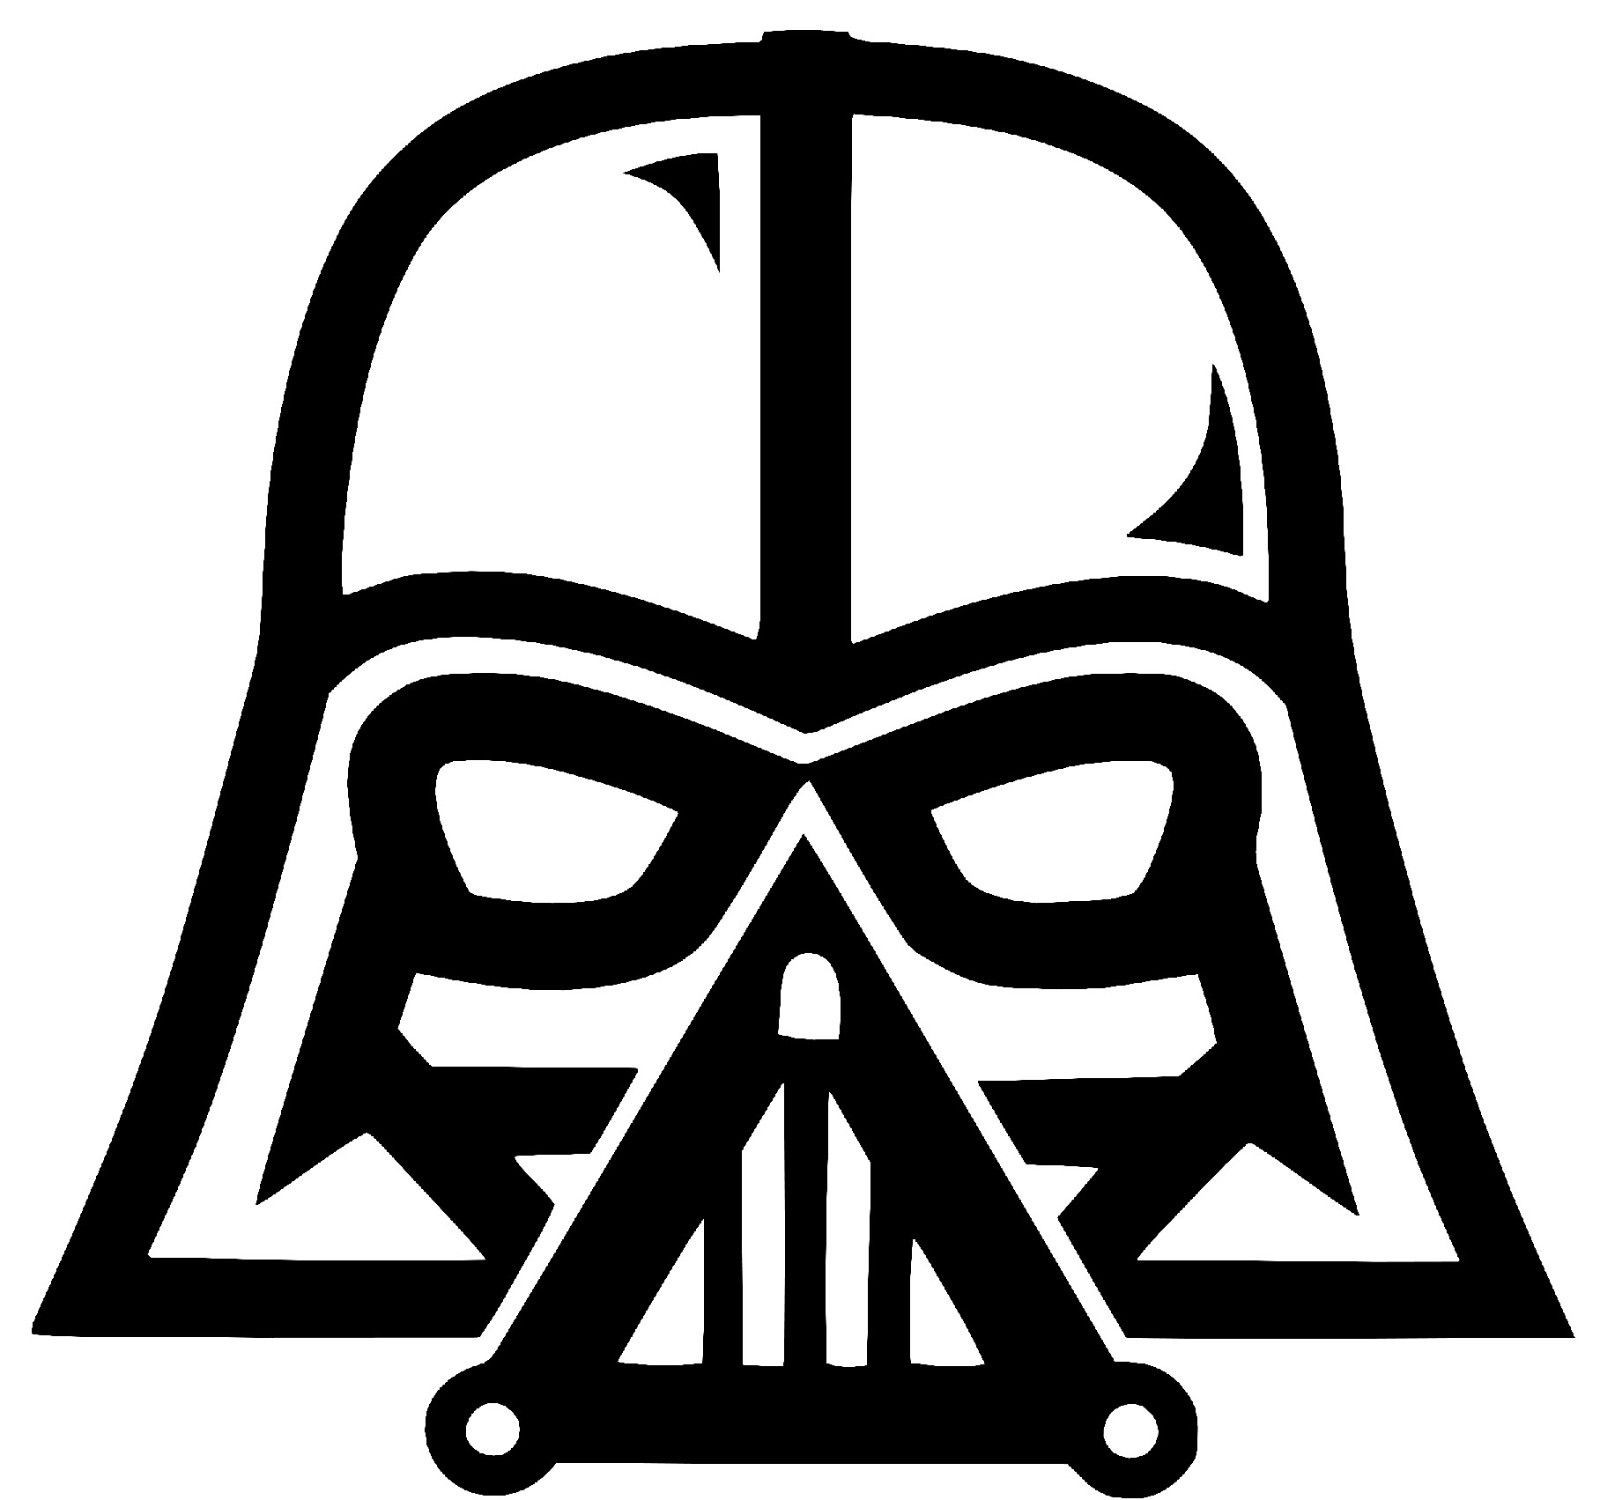 Starwars clipart head darth vader. Star wars vinyl fair